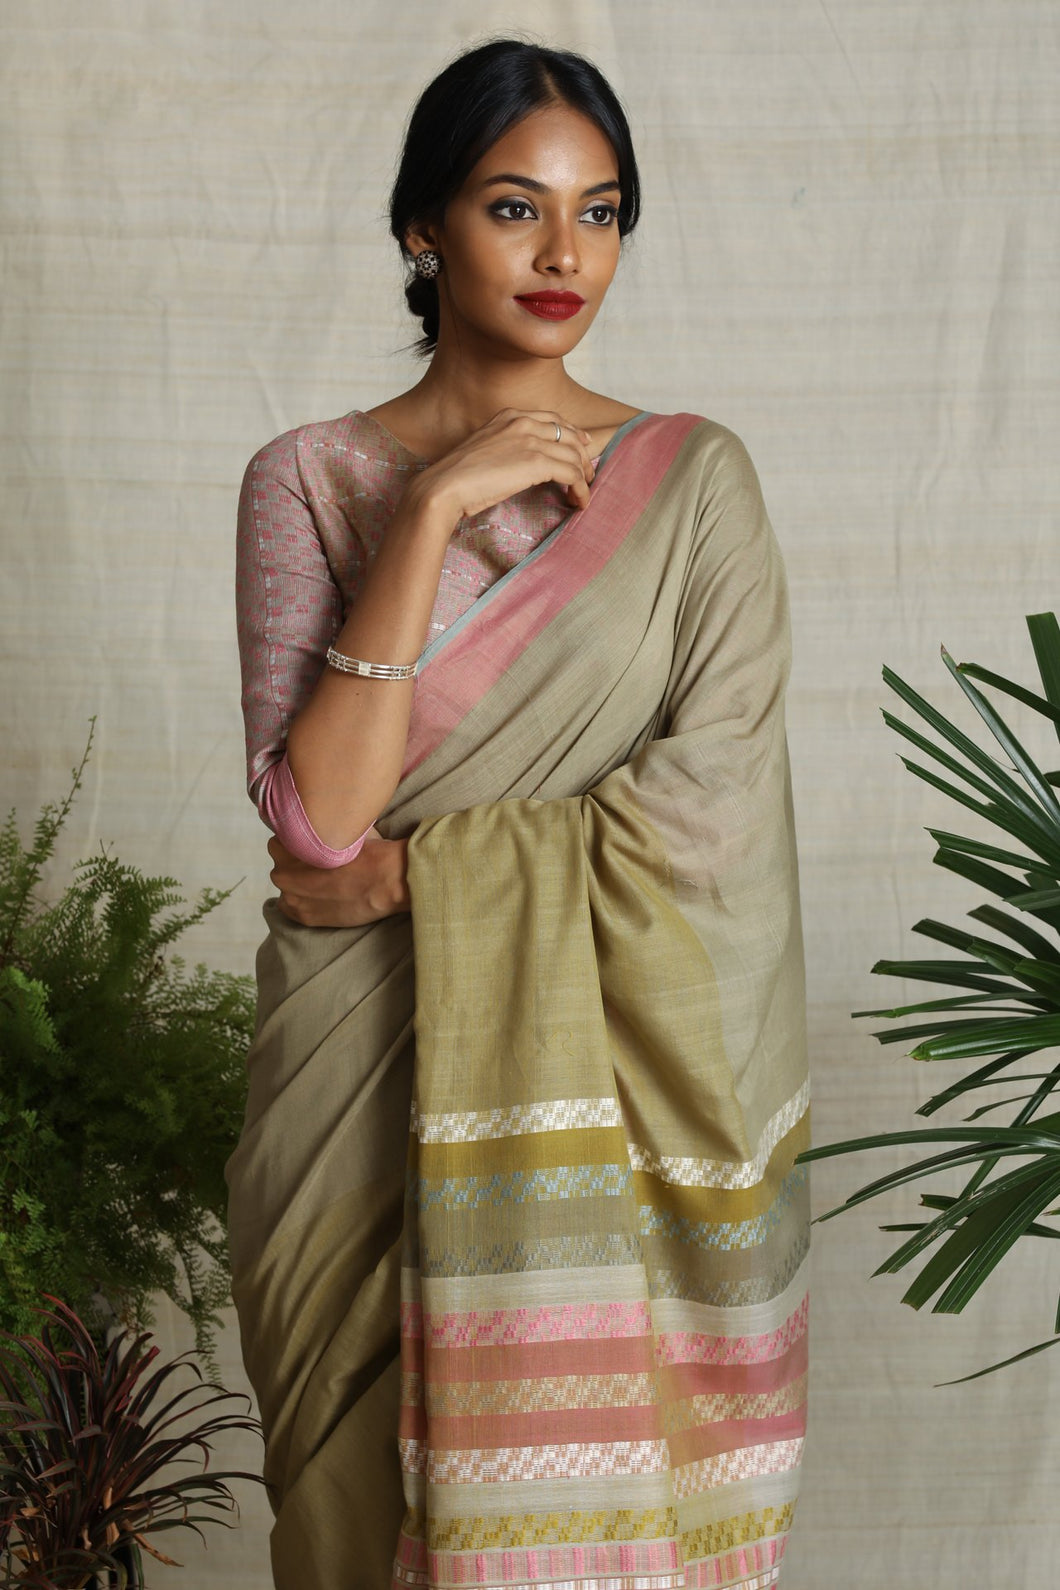 Urban Drape Morning Bloom Saree - Fashion Market.LK